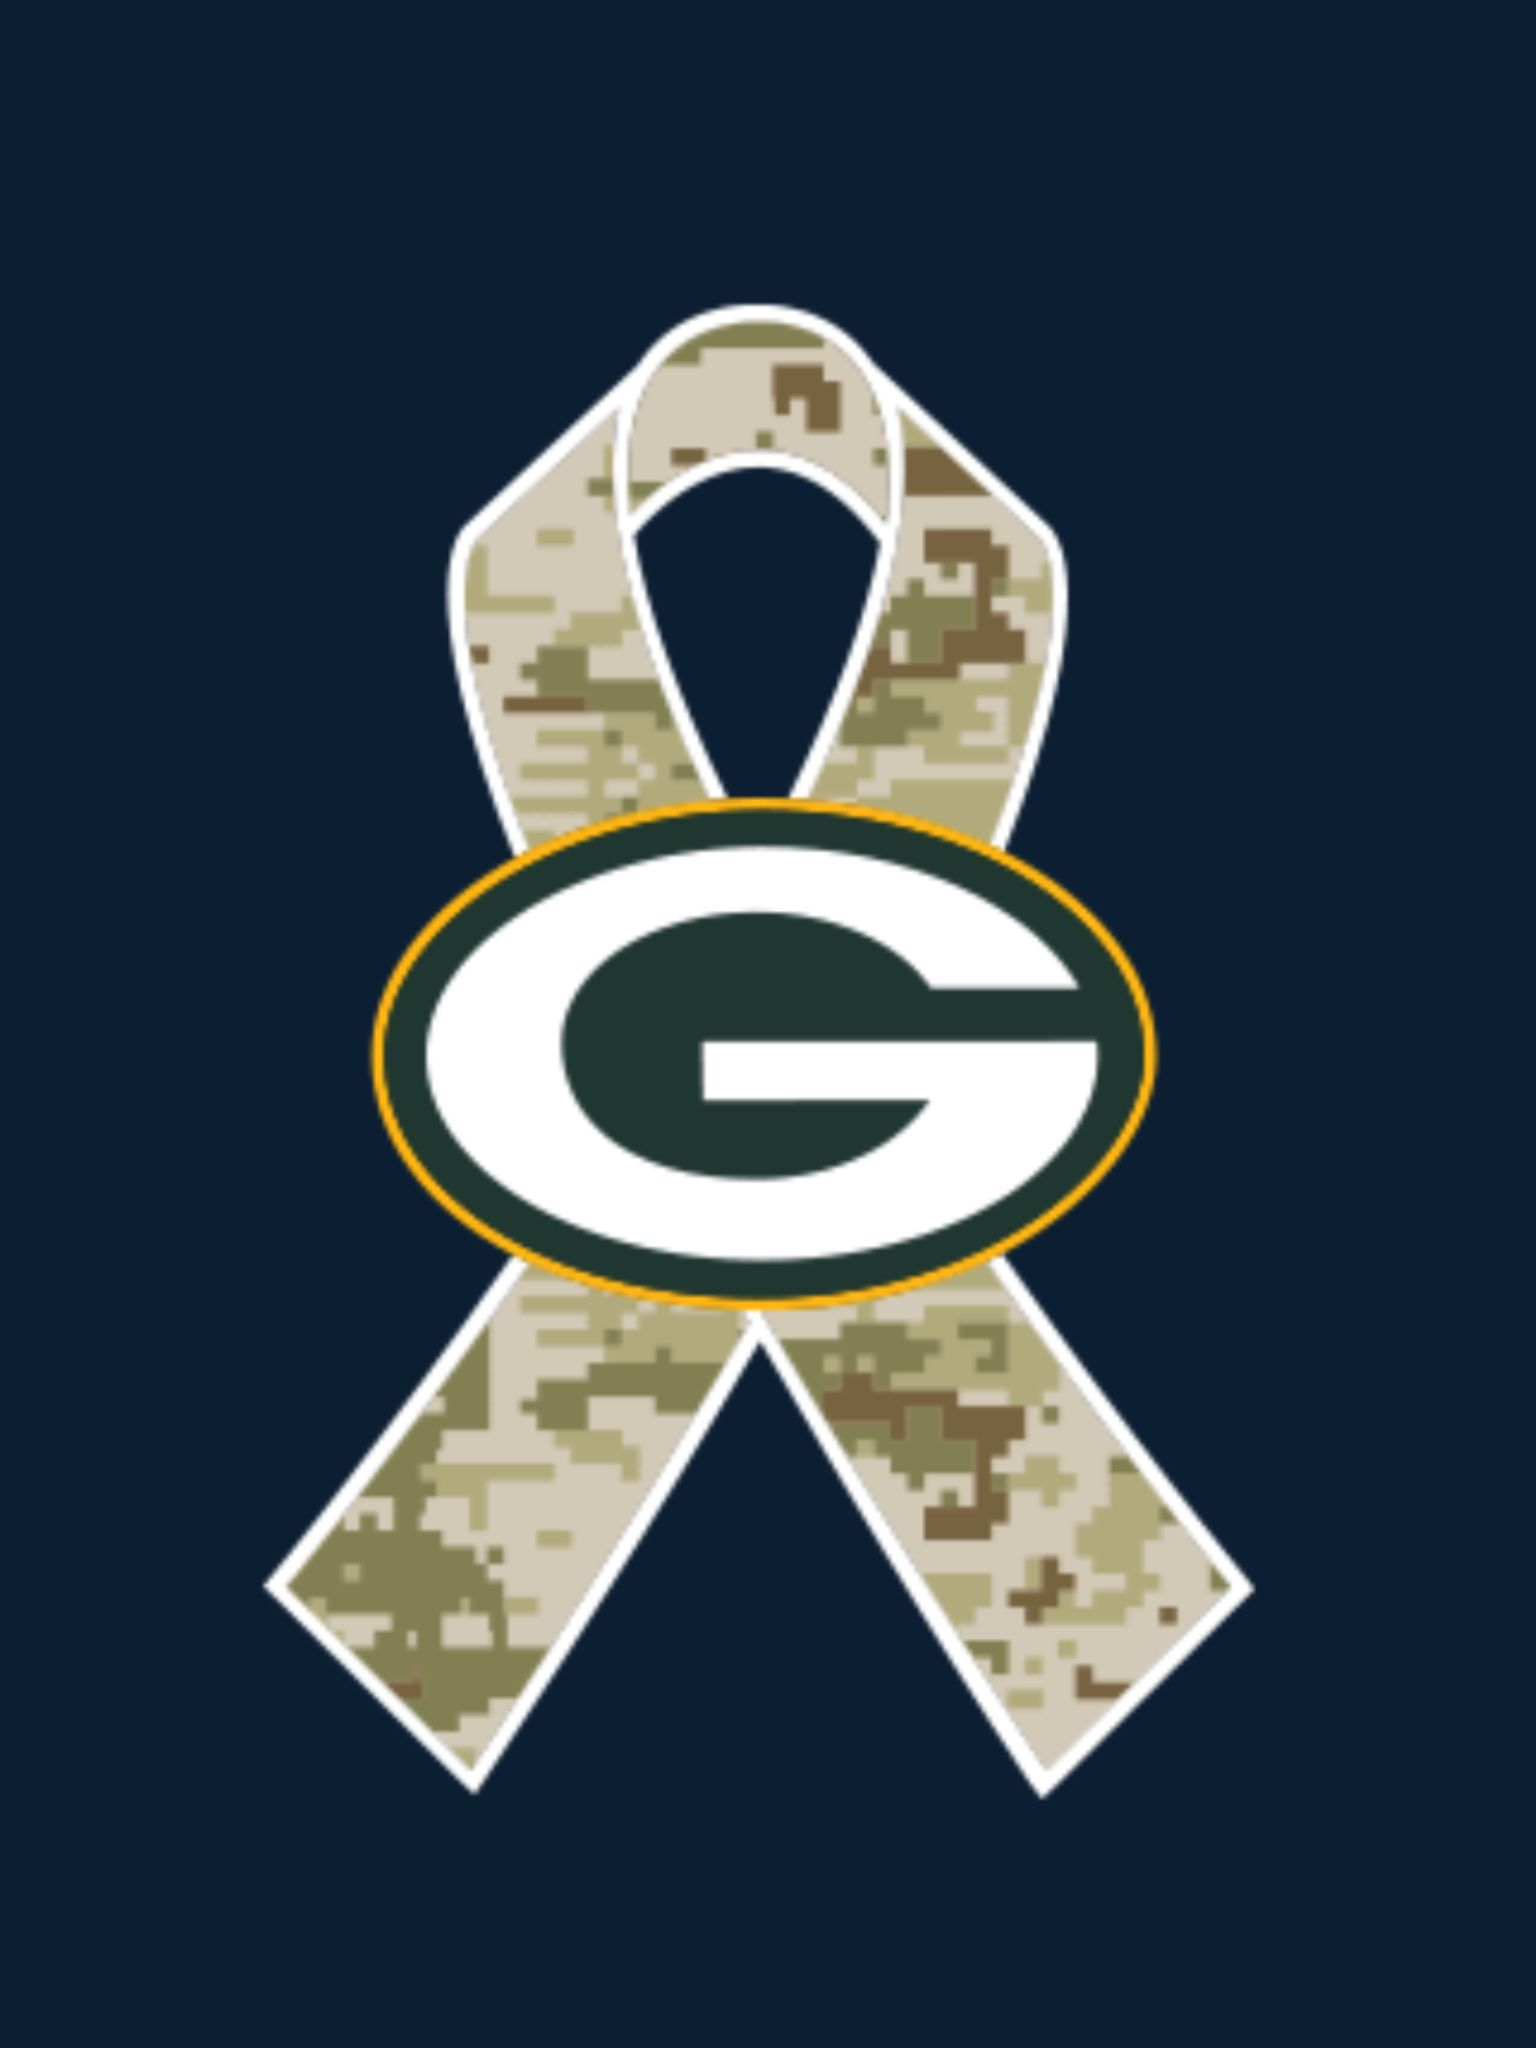 Love My Packers And The Military Green Bay Packers Wallpaper Green Bay Packers Fans Green Bay Packers Football